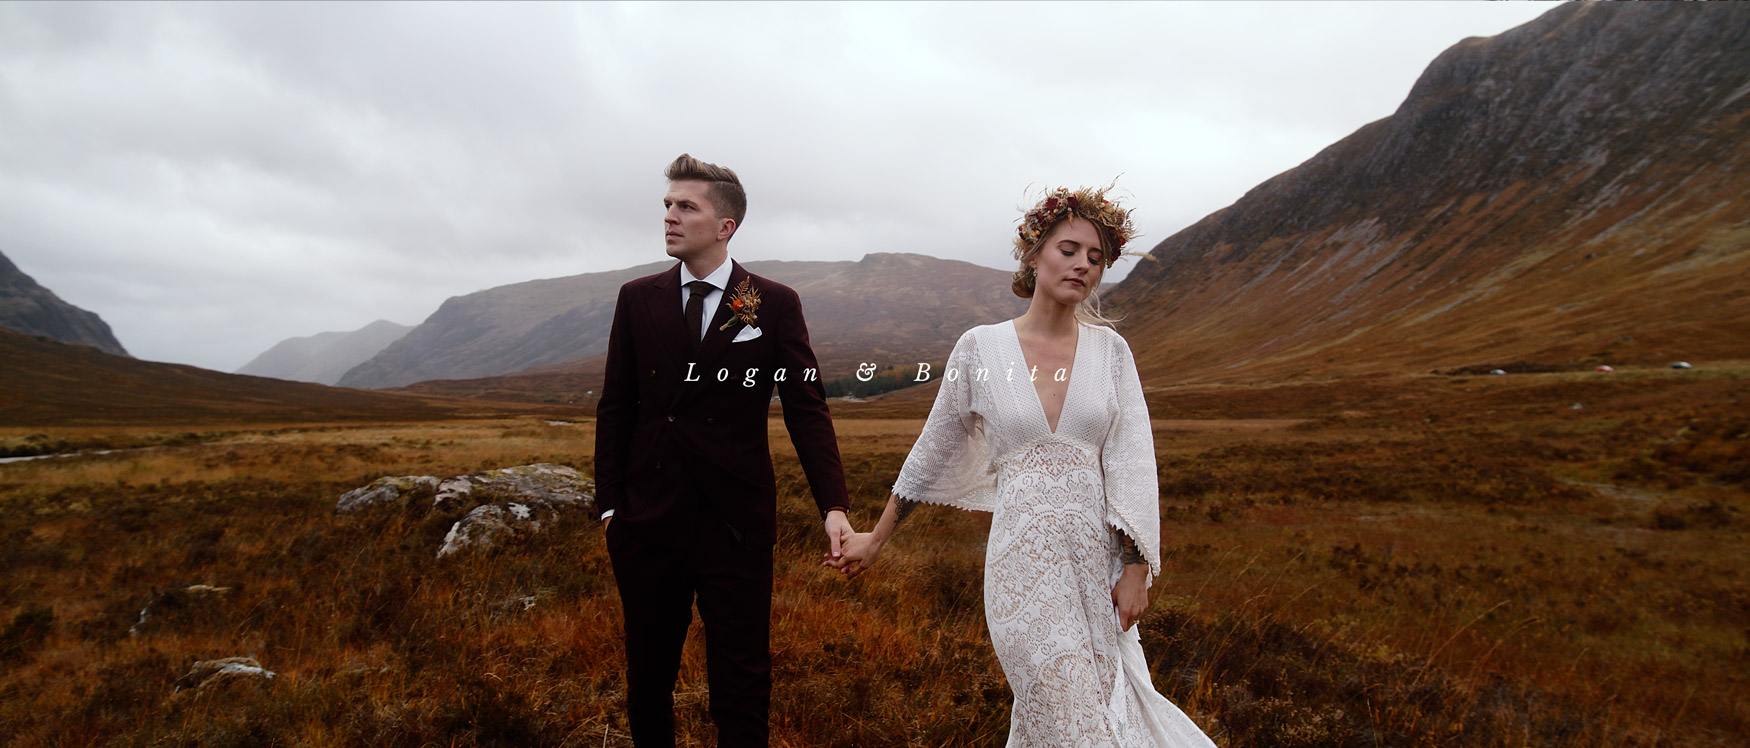 logan-bonita-schotland-scotland-glencoe-elopement-bruiloft-videograaf-trouwfilm-videographer-dreamers-amsterdam-trouwvideo-destination-wedding-web-1750px